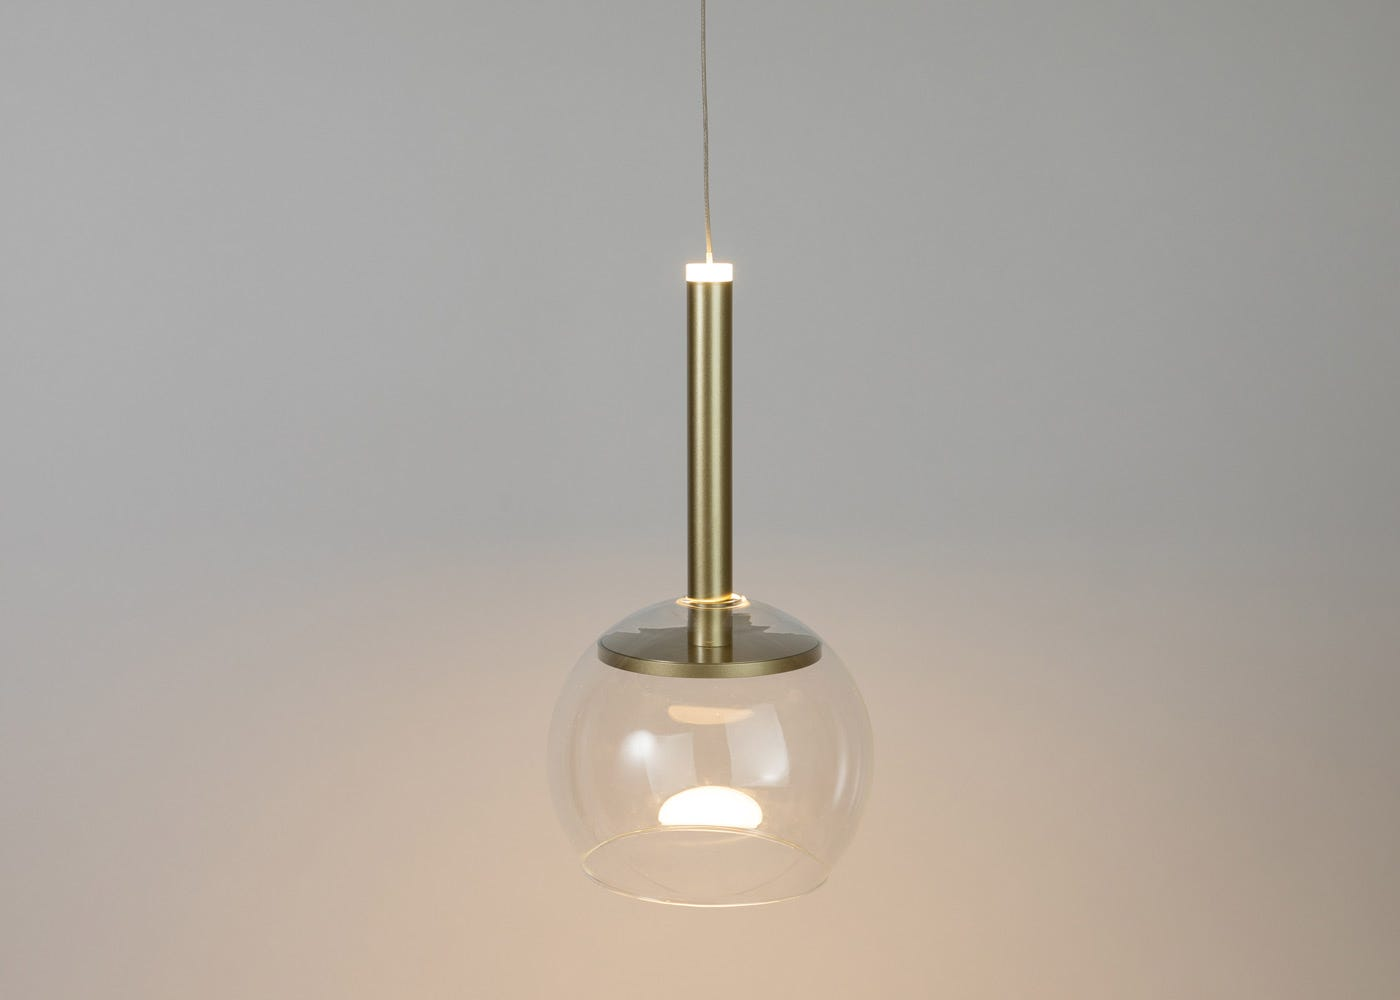 Clear glass shade with disc long LED pendant in gold on (please note the pendant is sold separately).